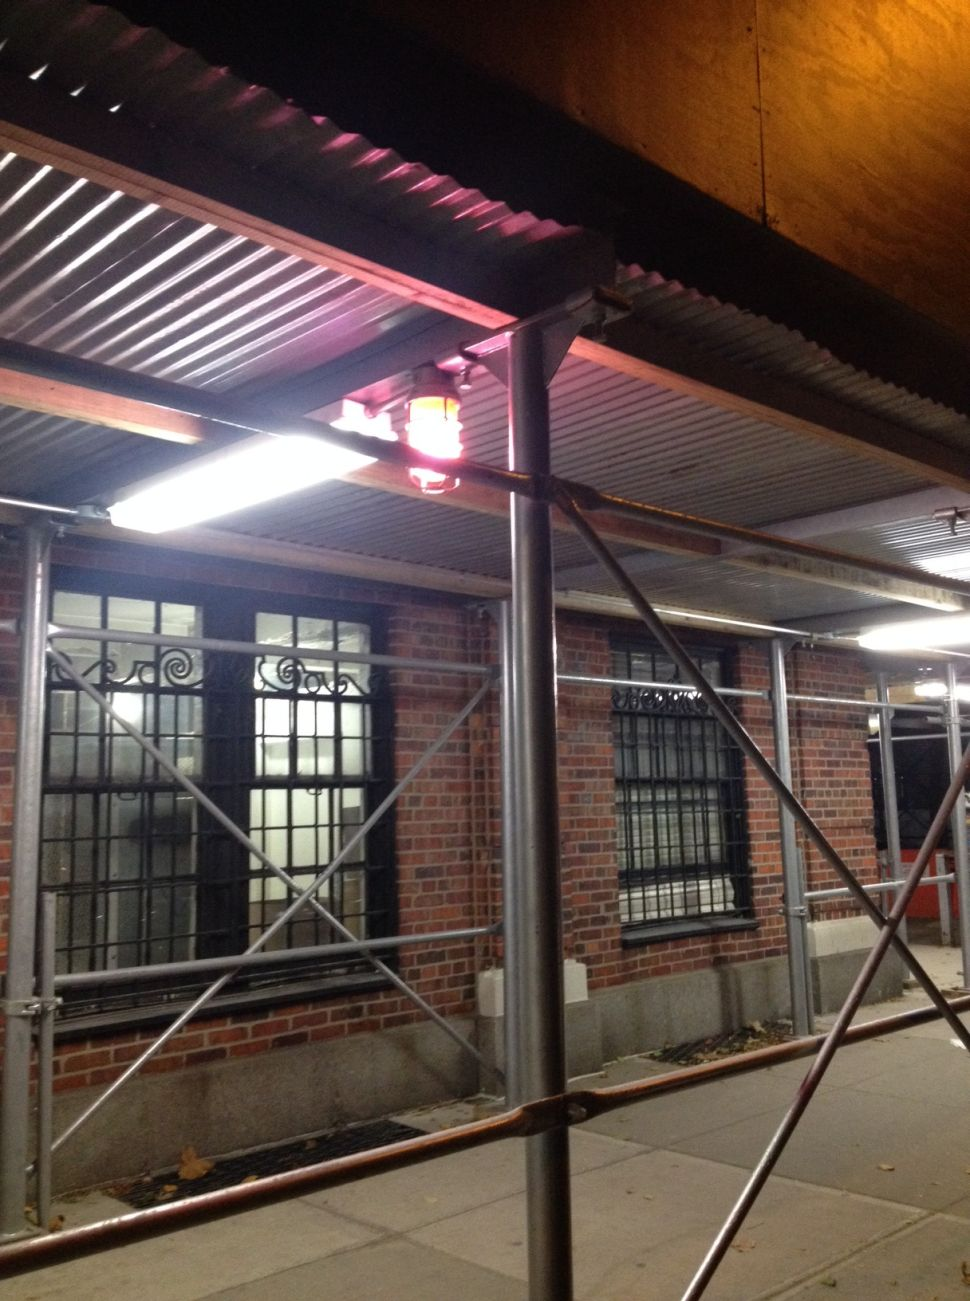 The Pink Light: a Minor New York Building Mystery